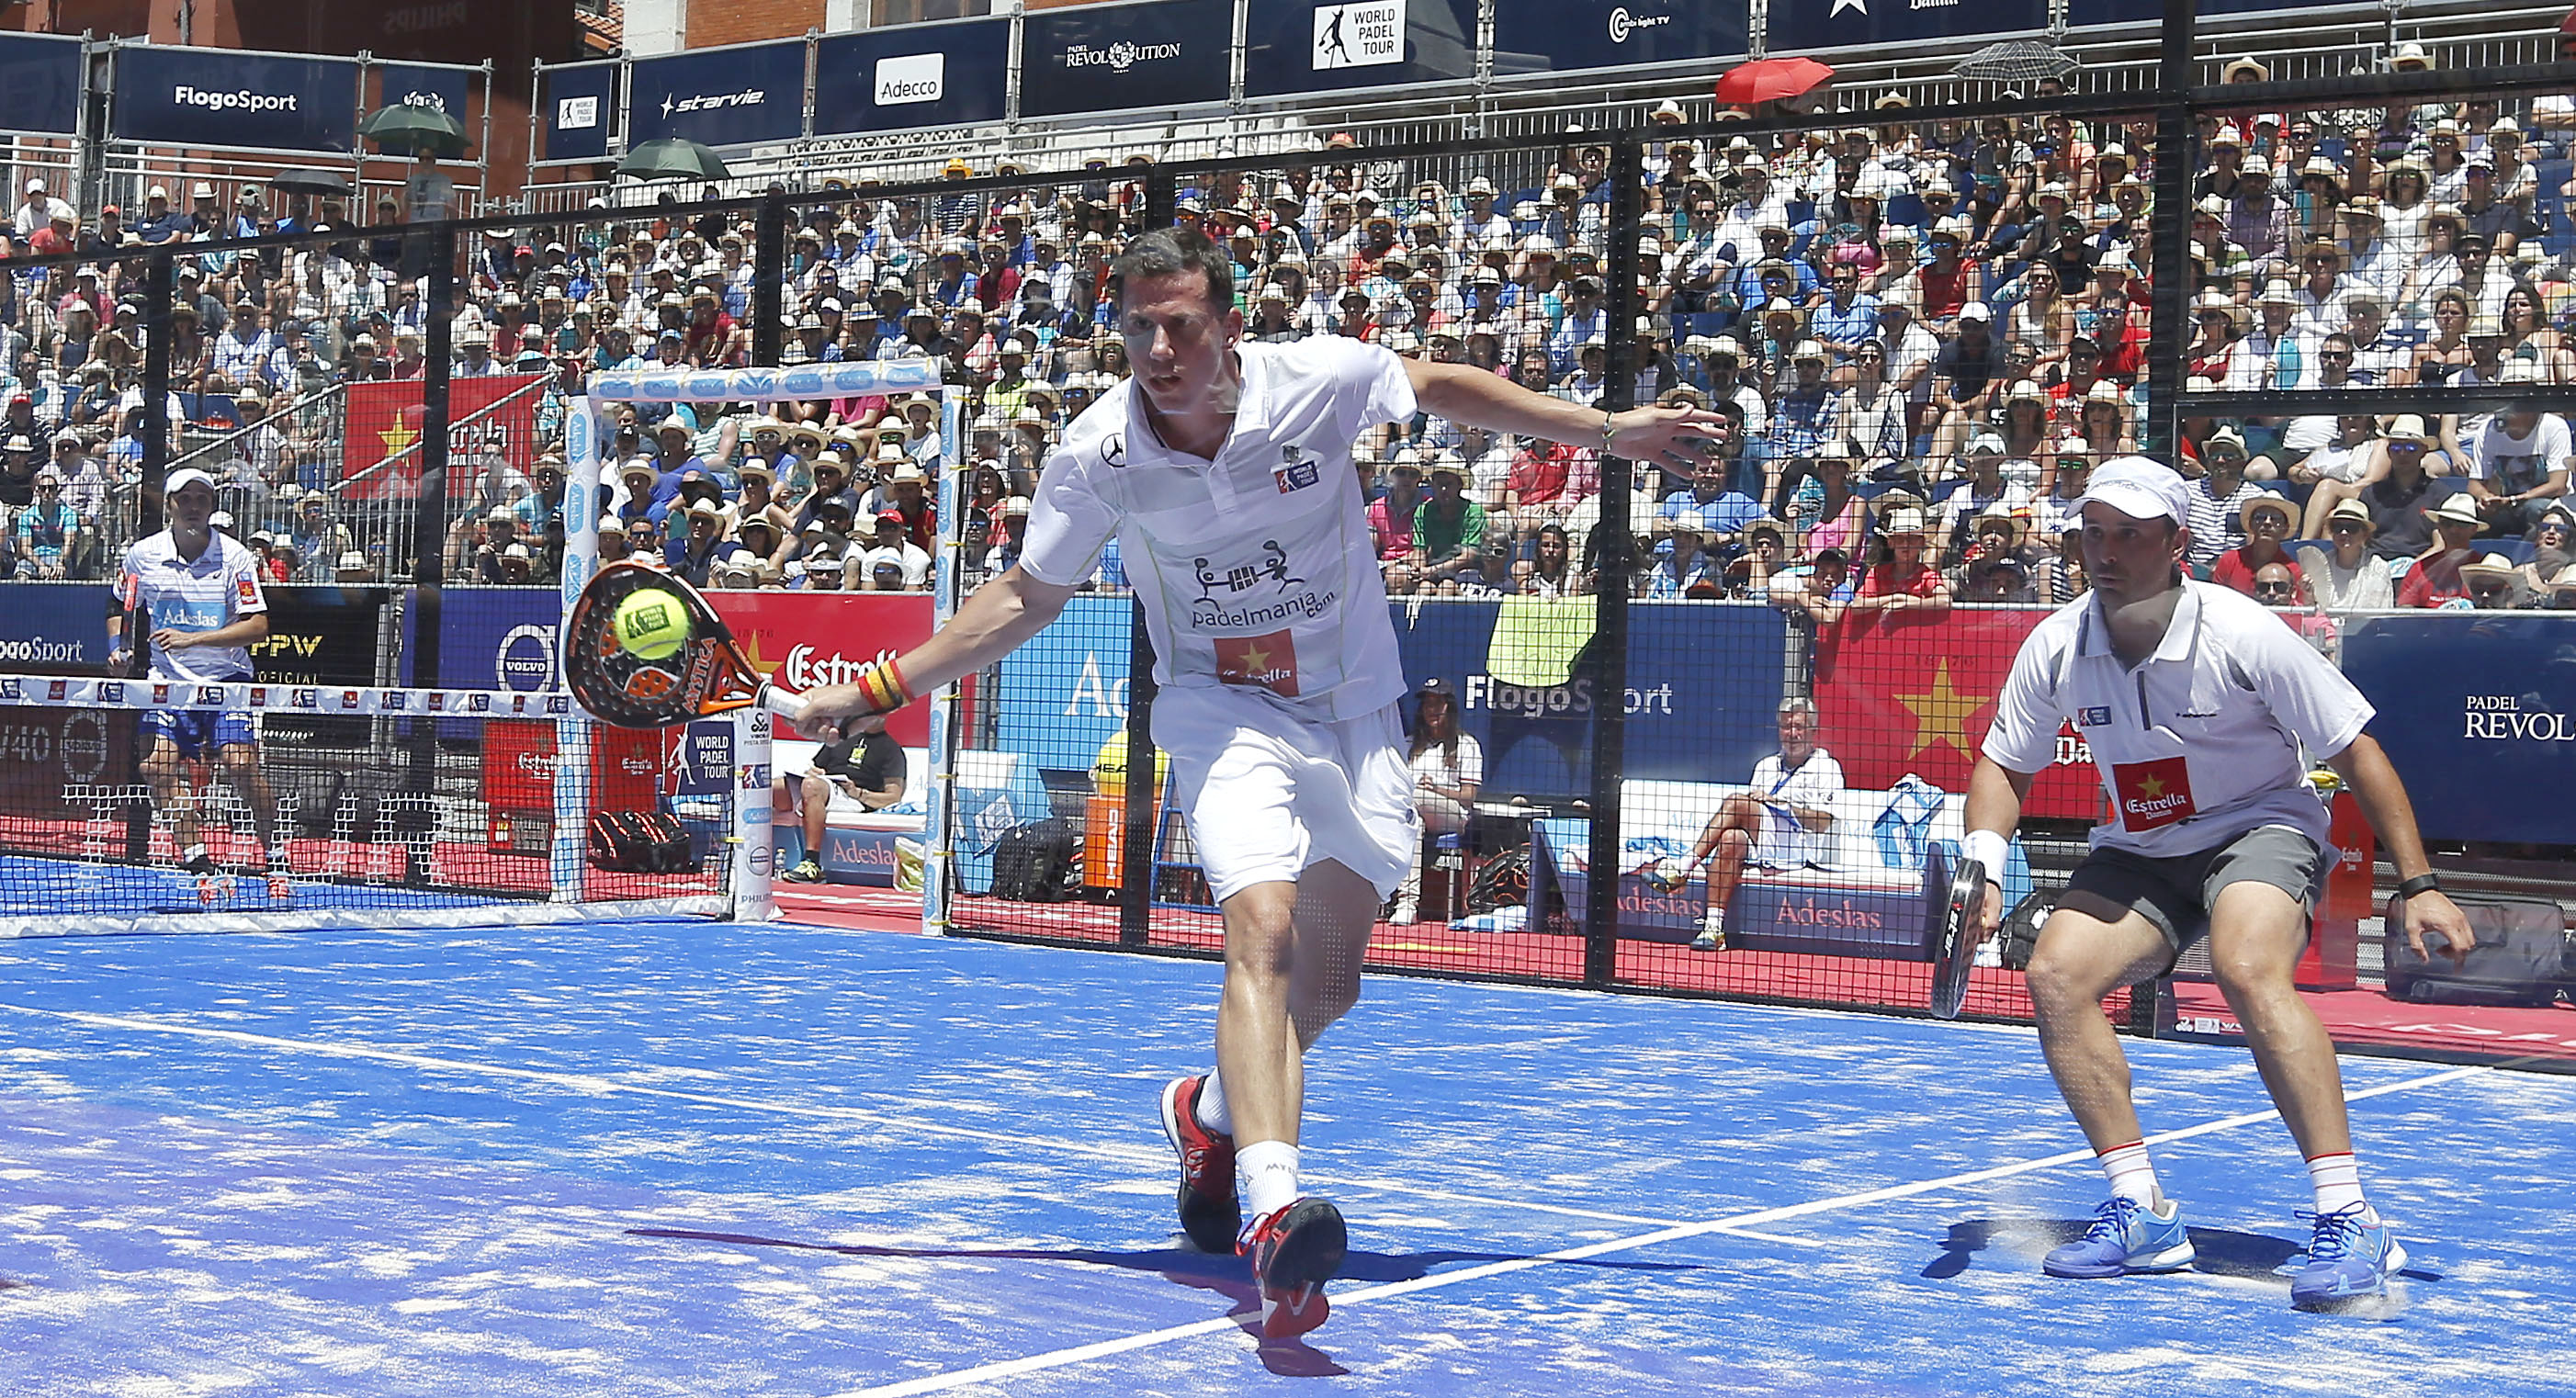 Calendario World Padel Tour.The Best Padel Will Be On Show In Barcelona From 30 May To